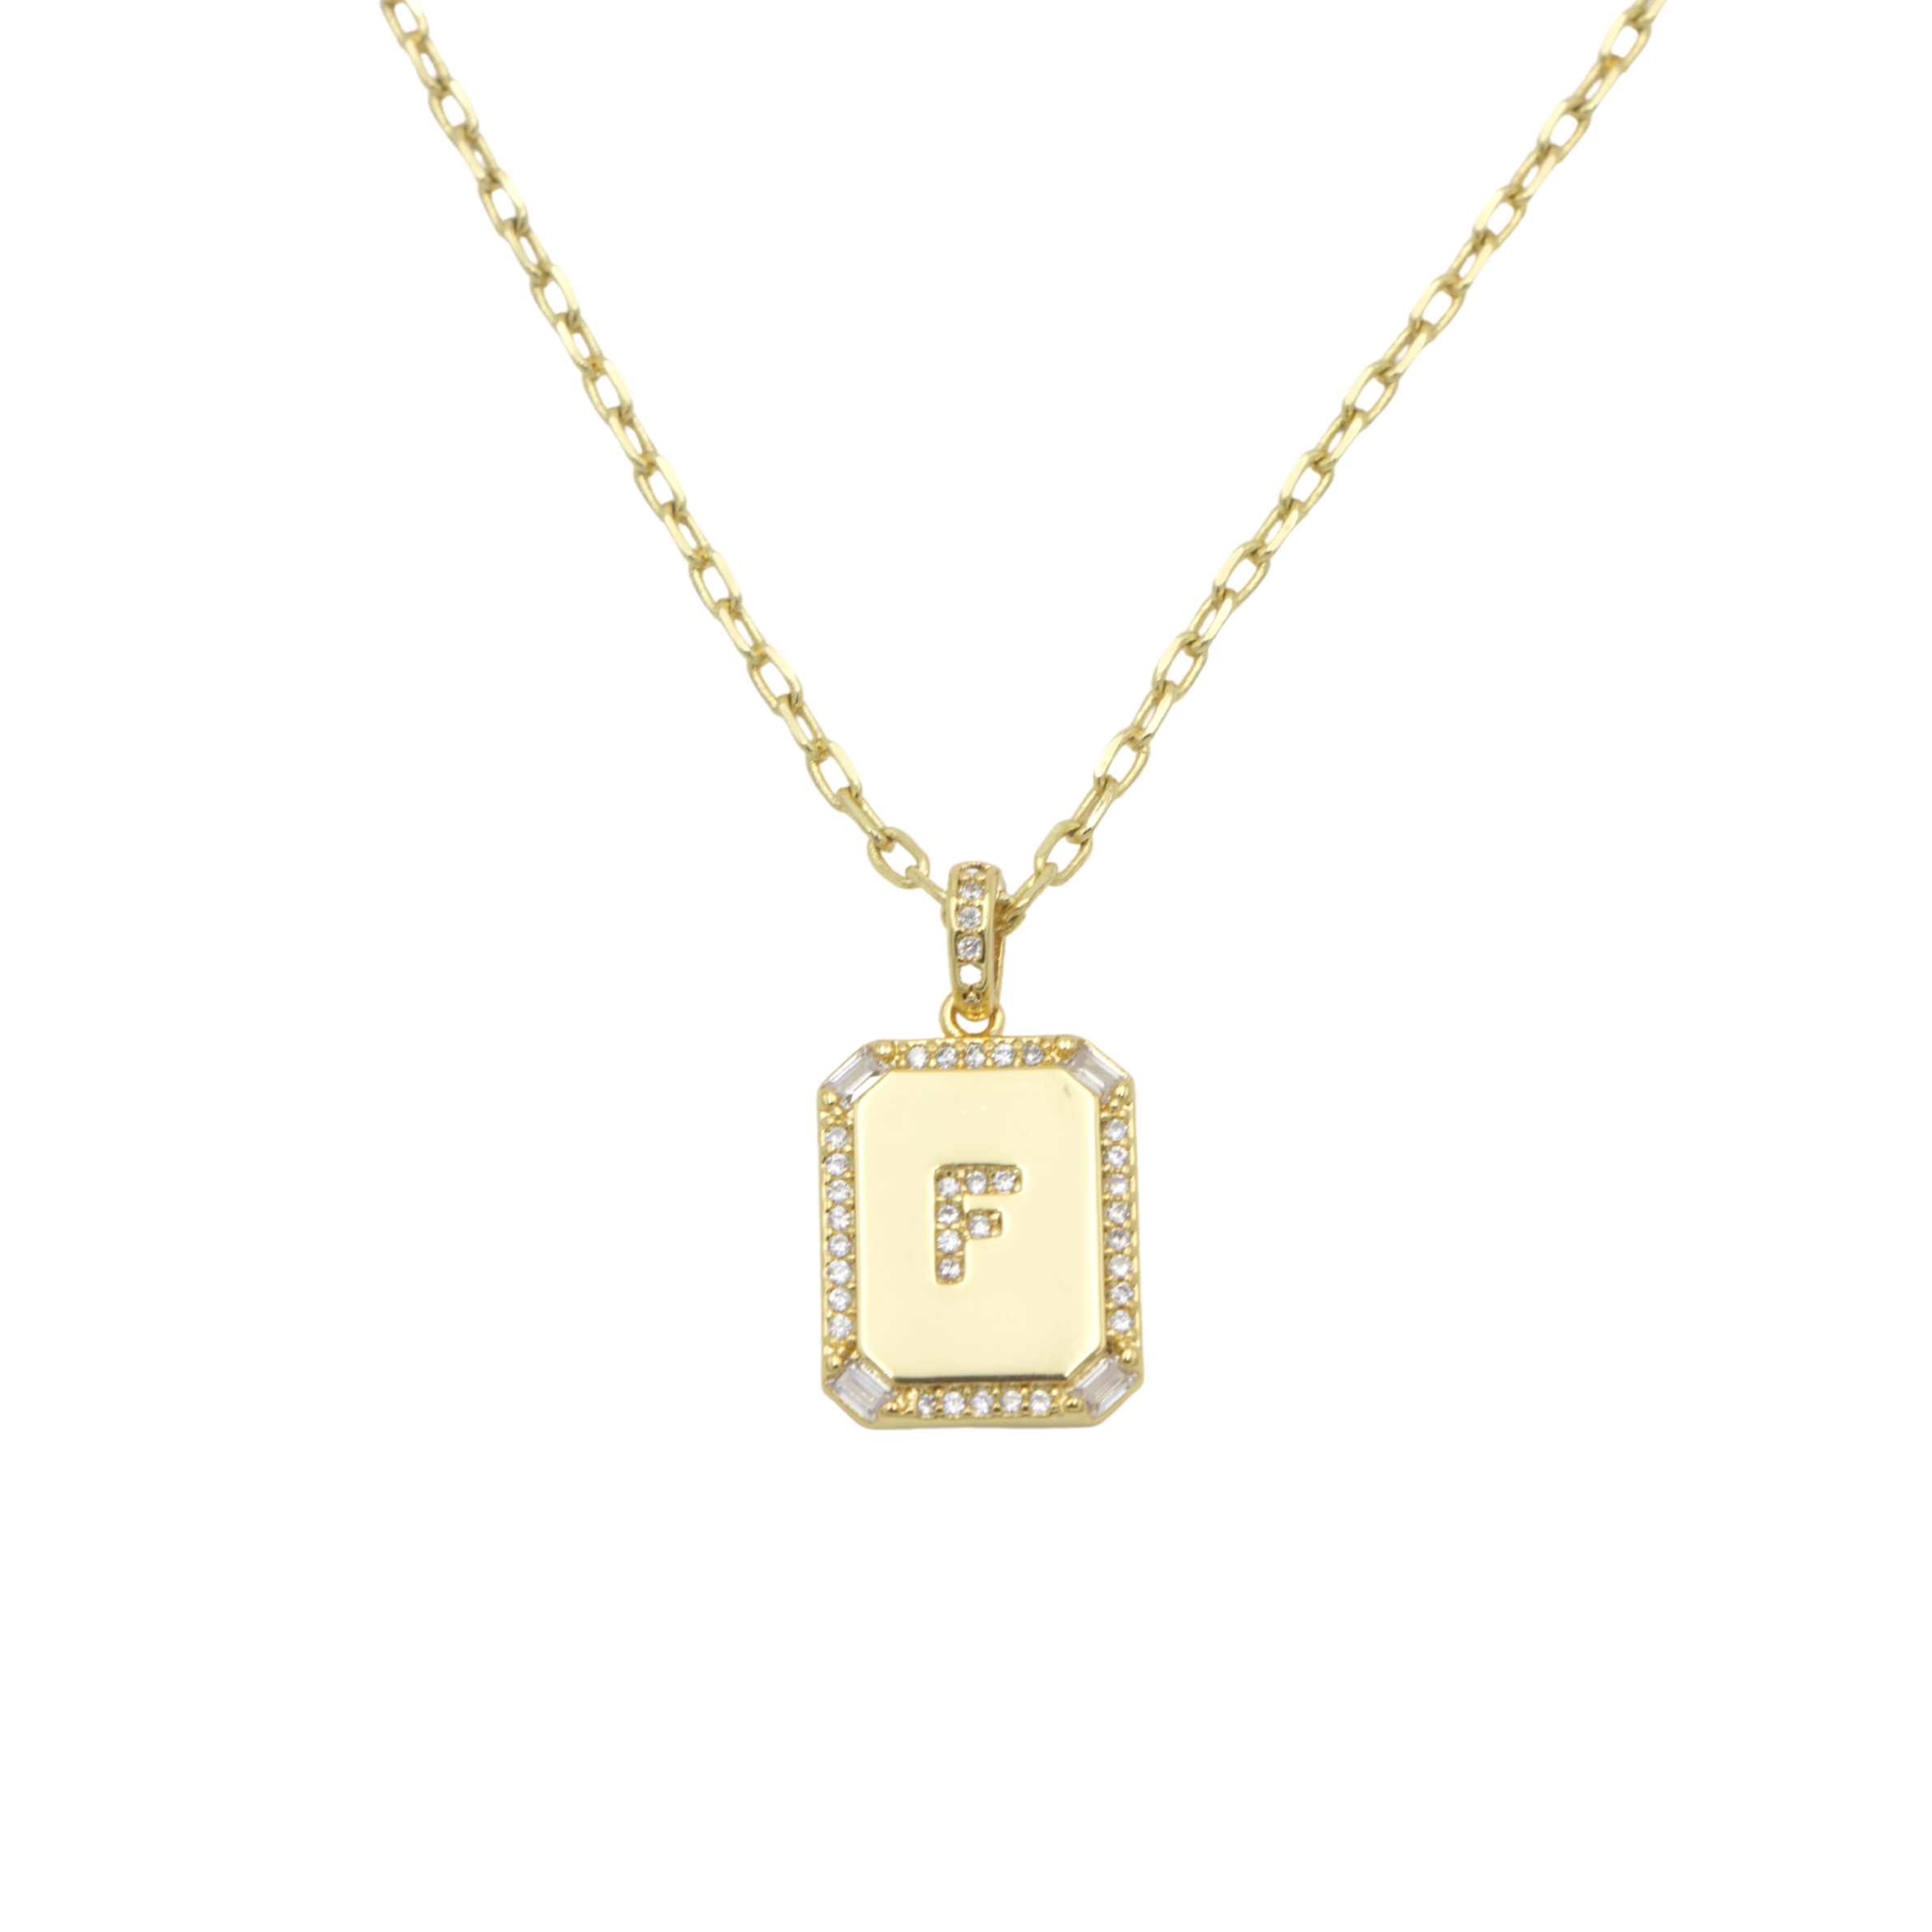 AW Boutique's gold filled 16 inch cable chain necklace finished with a dainty initial pendant with cubic zirconia detail. F initial shown.